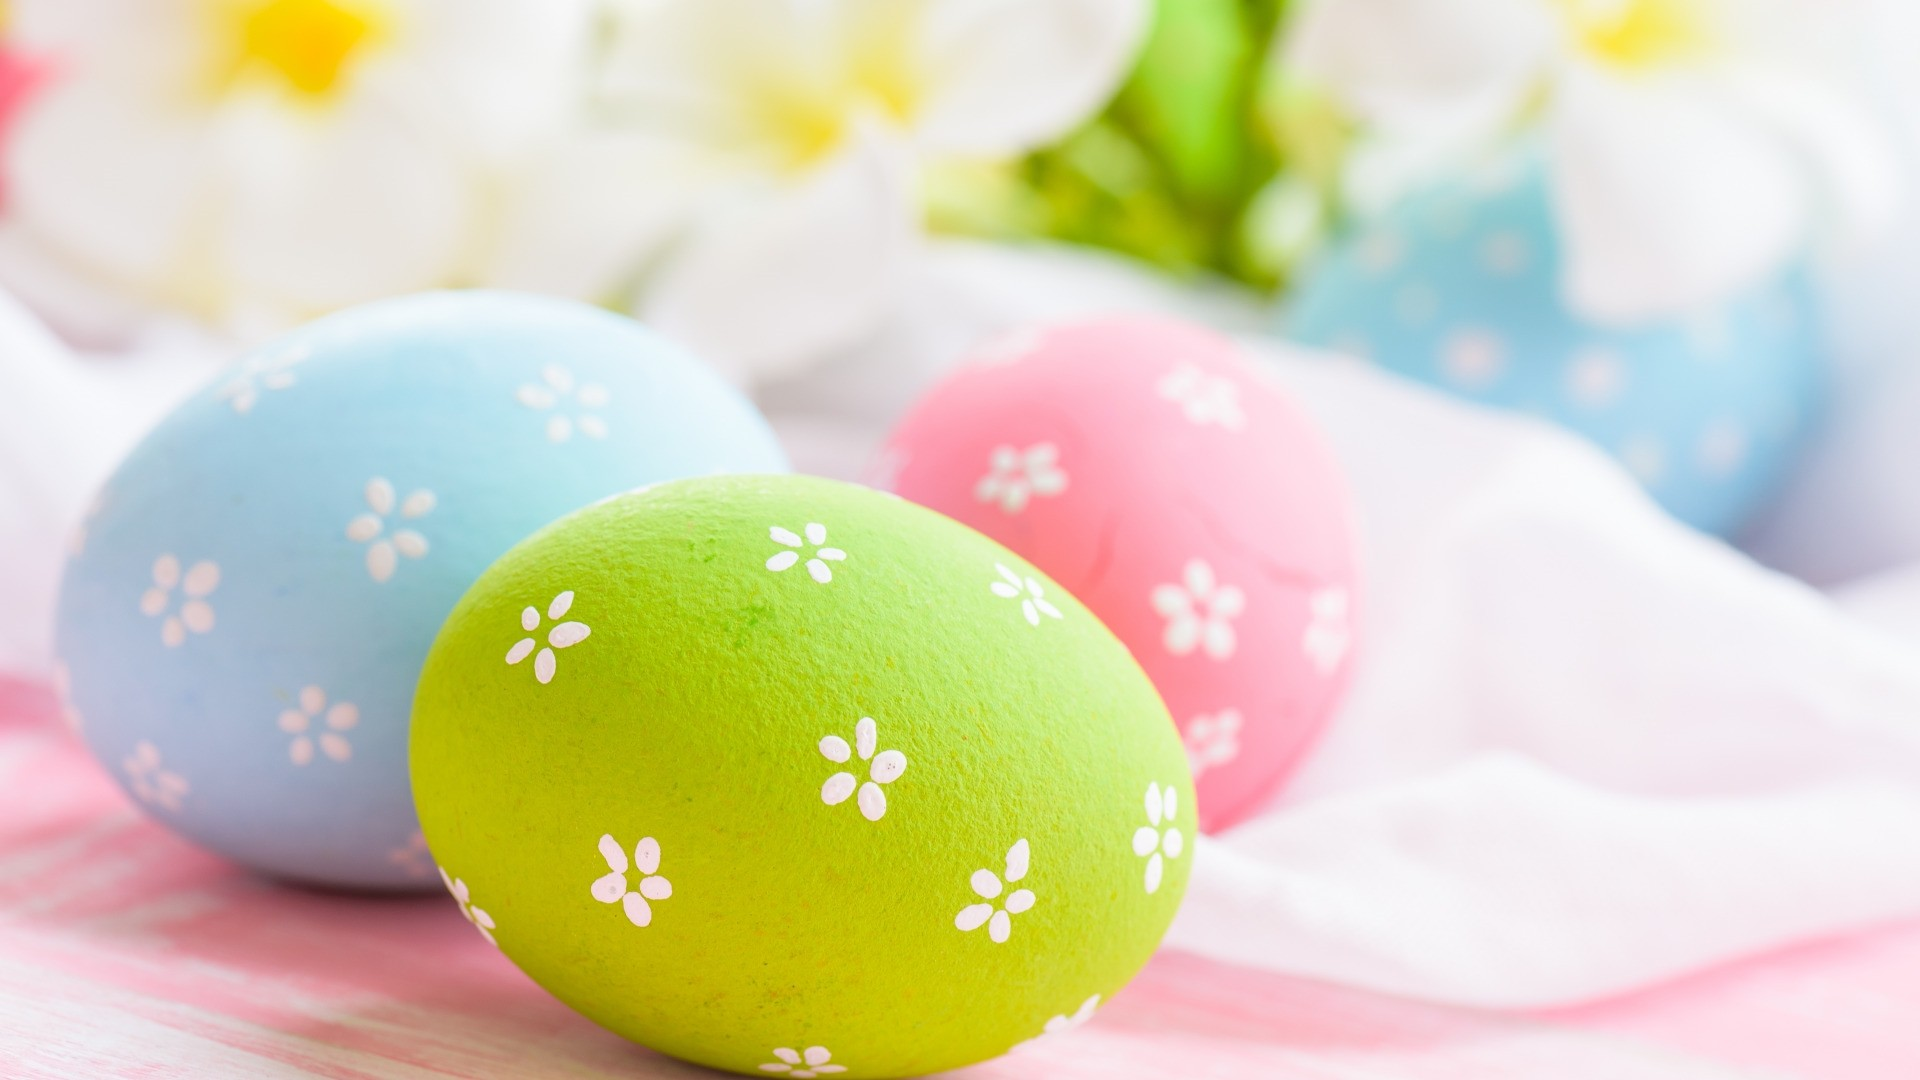 Easter Egg Decoration Image